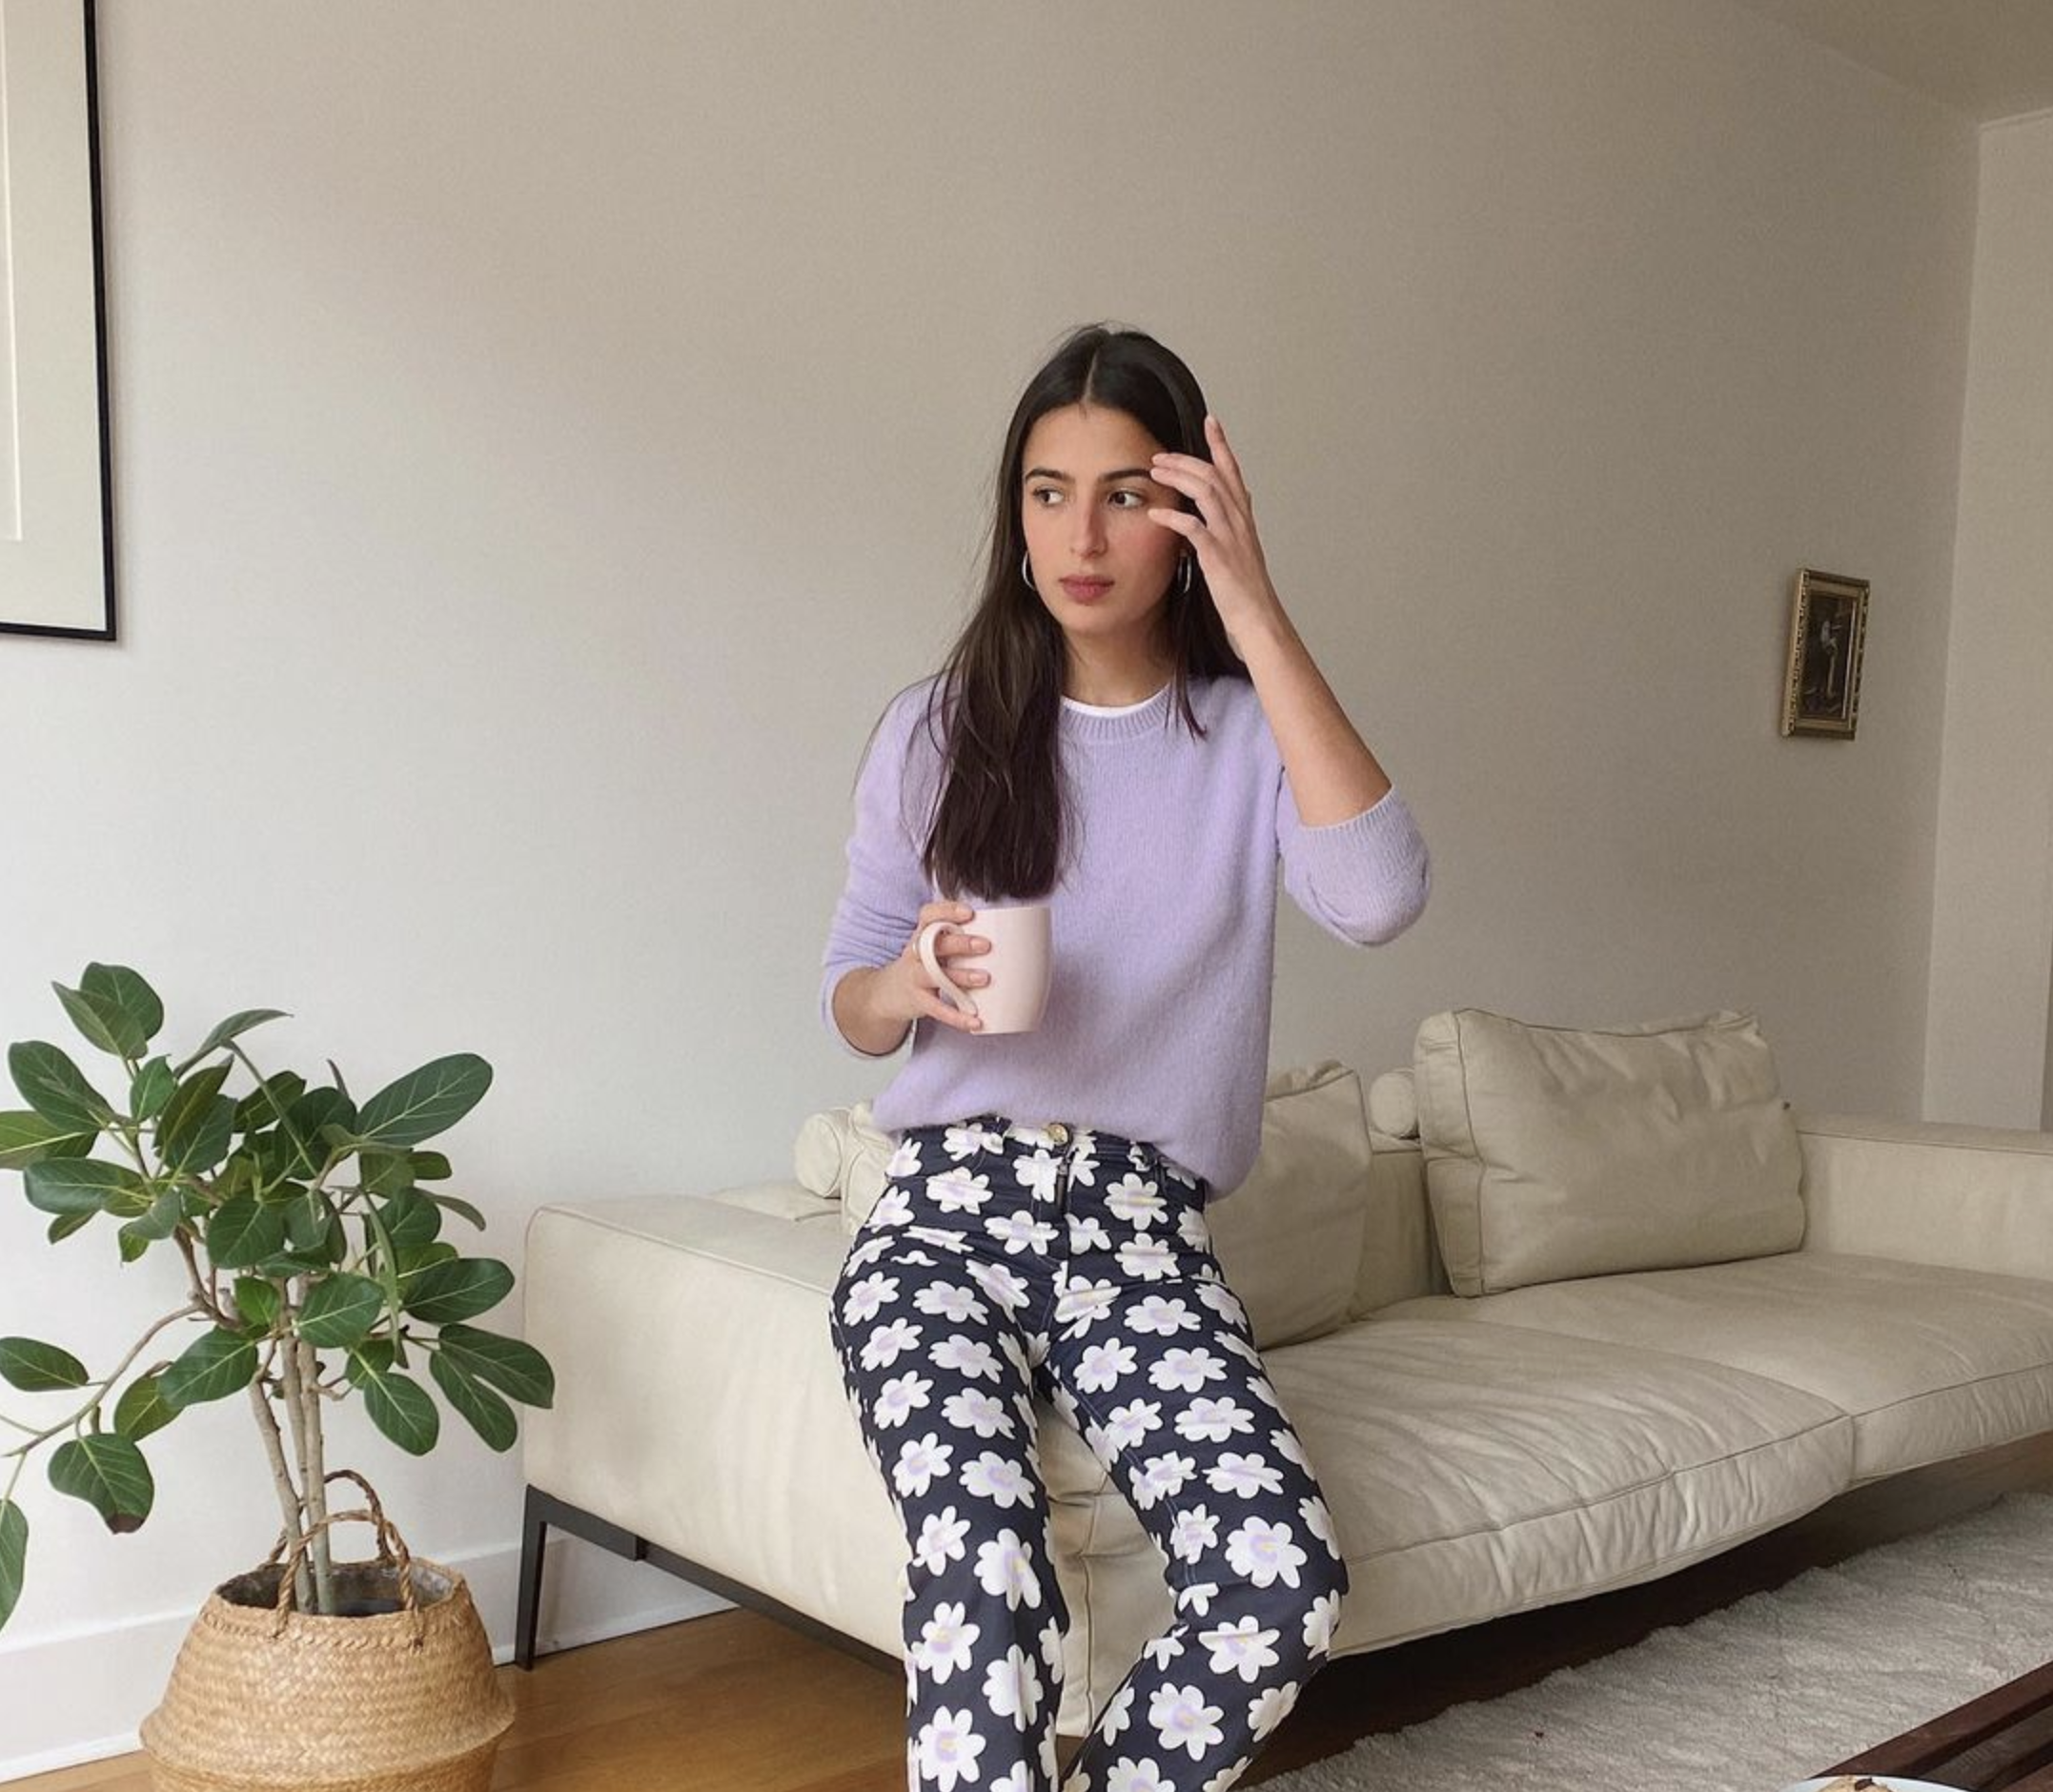 Shop balou pant, photo from influencer campain